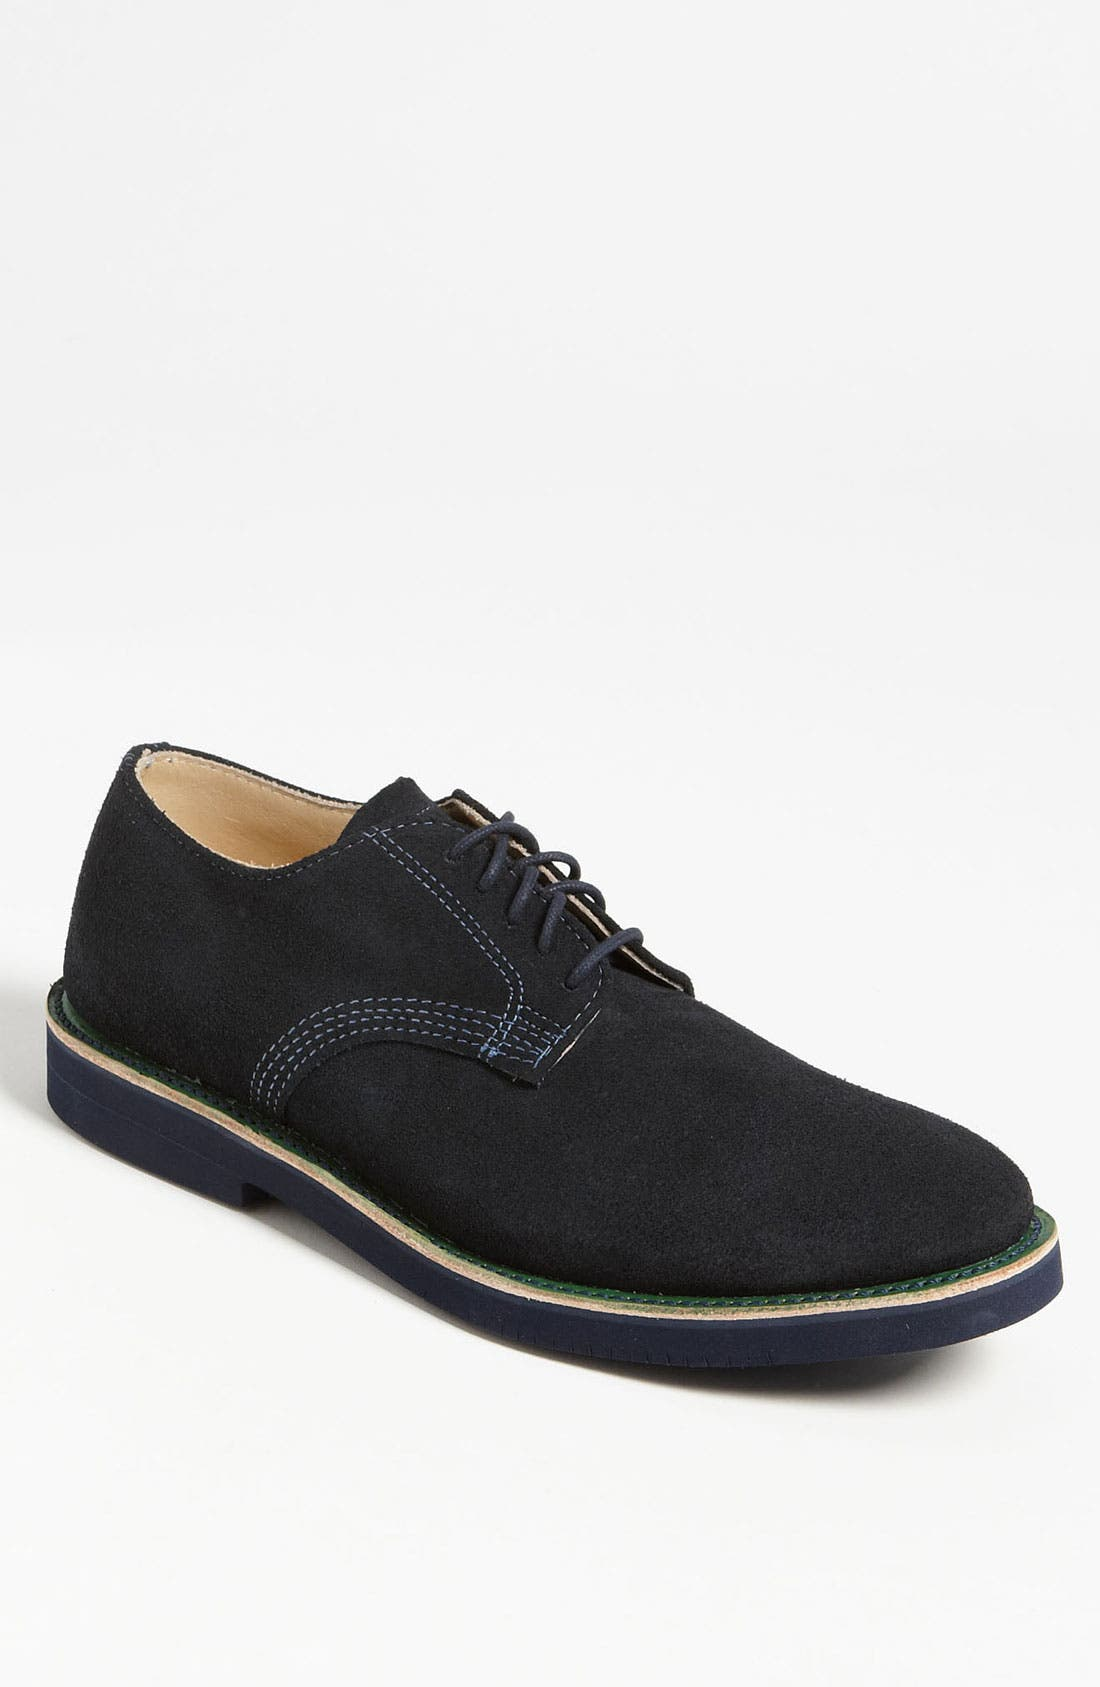 Main Image - Walk-Over 'Derby' Buck Shoe